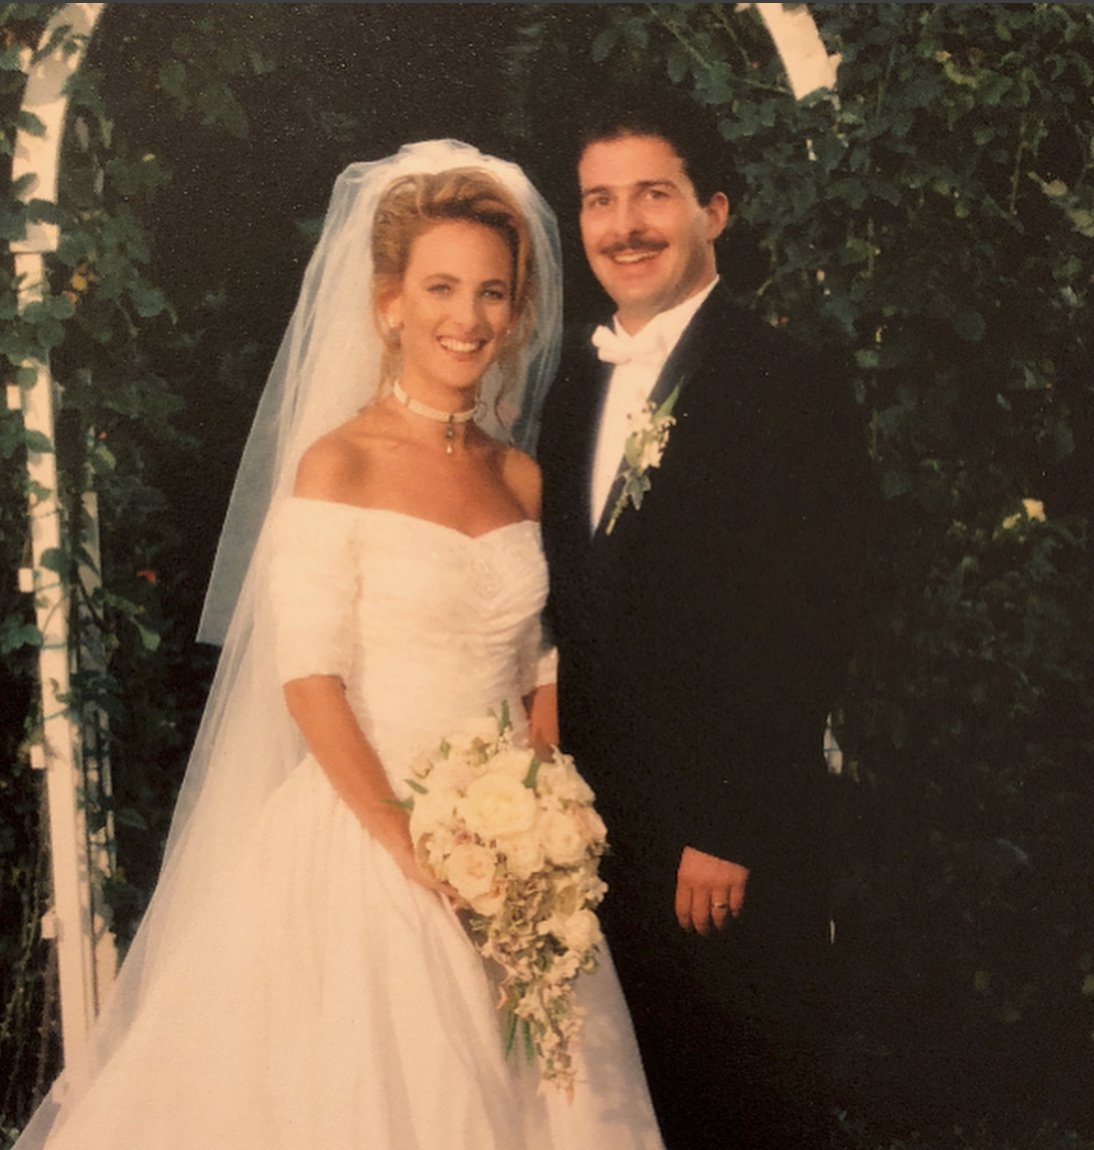 25 years ago today, I married this wonderful man. Happy 25th Anniversary to Kevin and me! #trulyblessed https://t.co/Kj8HxiRKep